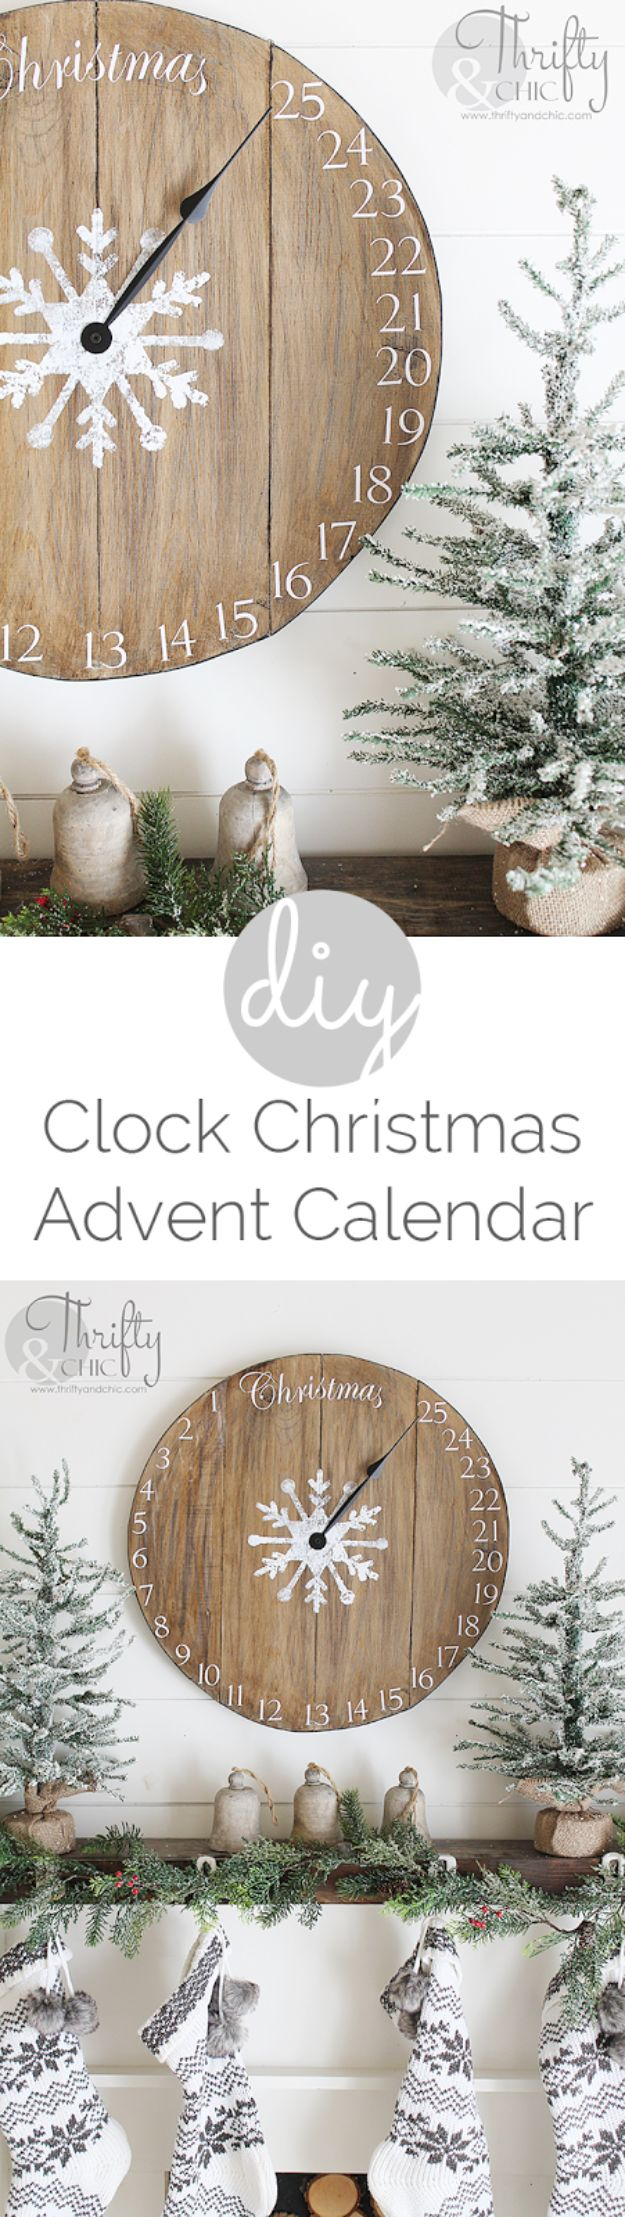 Cheap DIY Christmas Decor Ideas and Holiday Decorating On A Budget - DIY Wood Clock Christmas Advent Calendar - Easy and Quick Decorating Ideas for The Holidays - Cool Dollar Store Crafts for Xmas Decorating On A Budget - wreaths, ornaments, bows, mantel decor, front door, tree and table centerpieces #christmas #diy #crafts